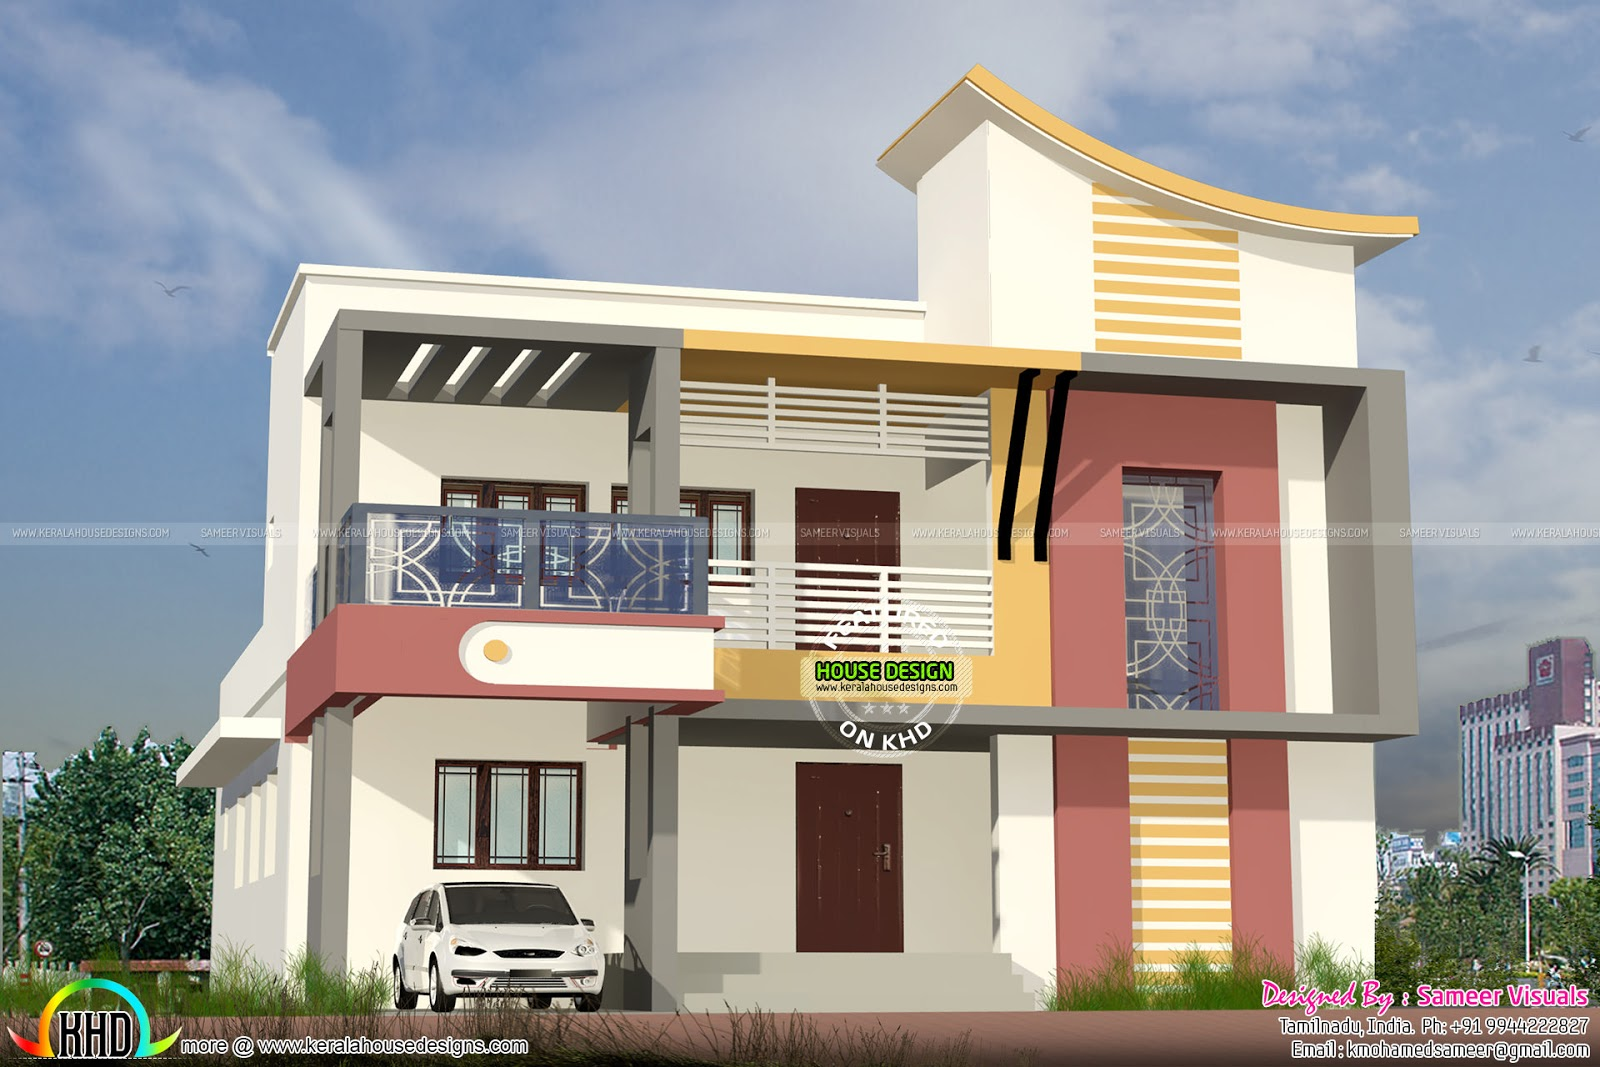 Model house plan in tamilnadu joy studio design gallery for Tamil nadu house plan